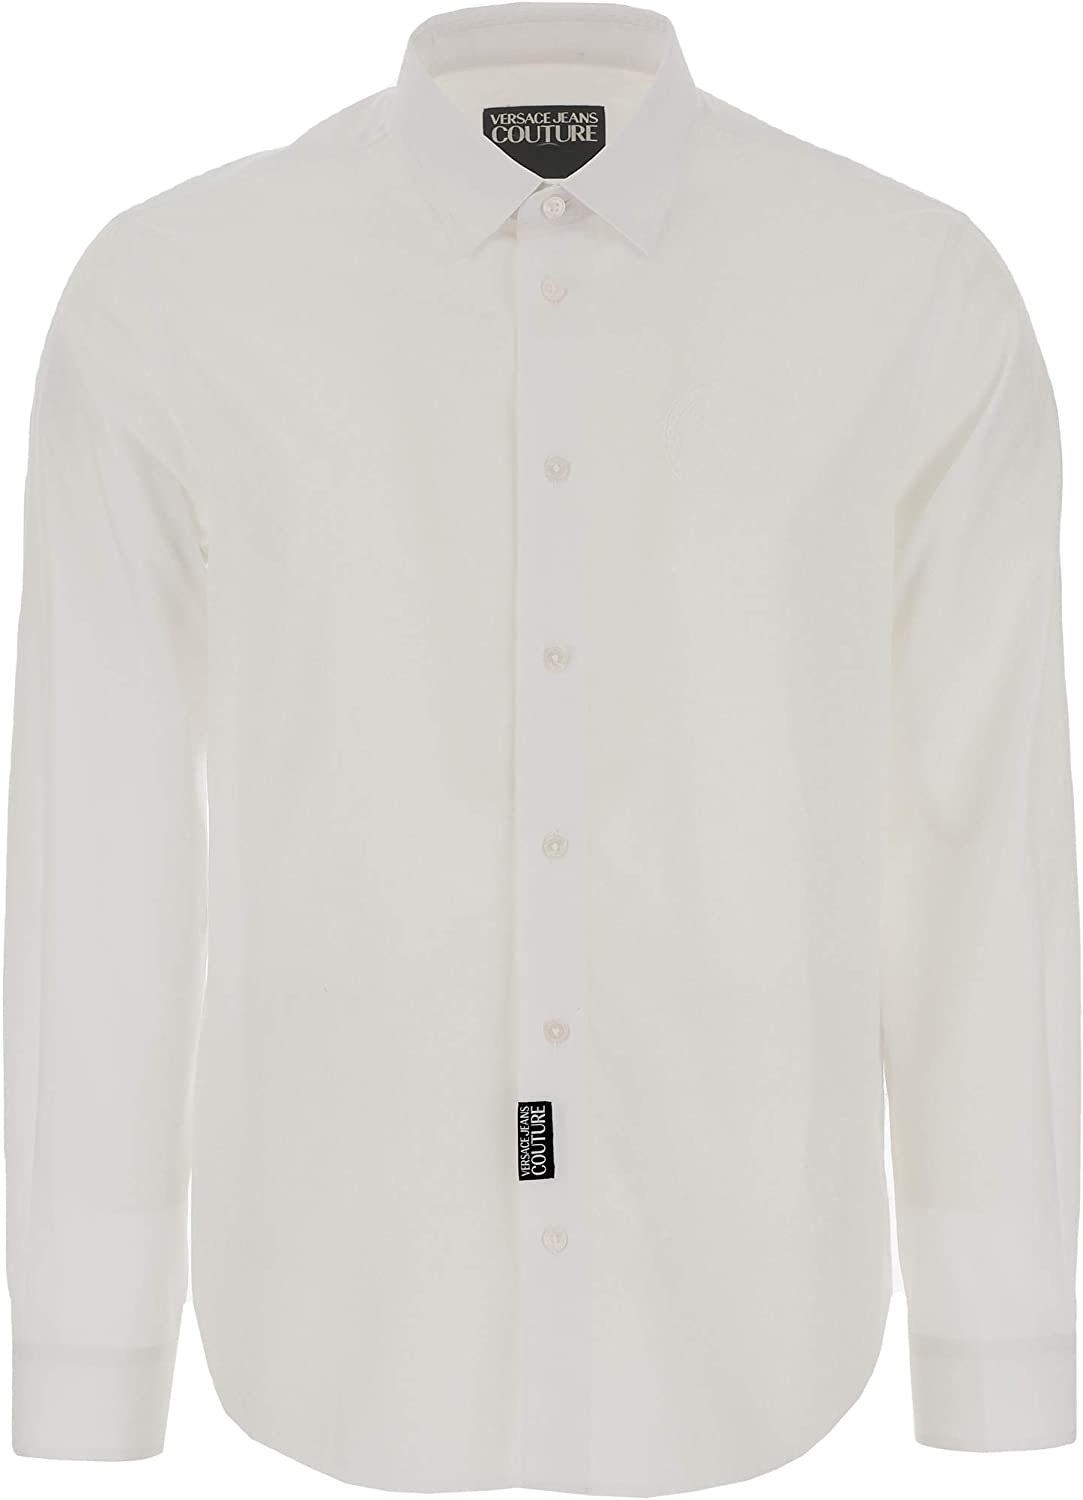 Versace Jeans Couture 100% Cotton V-Logo Classic Shirt- for Mens